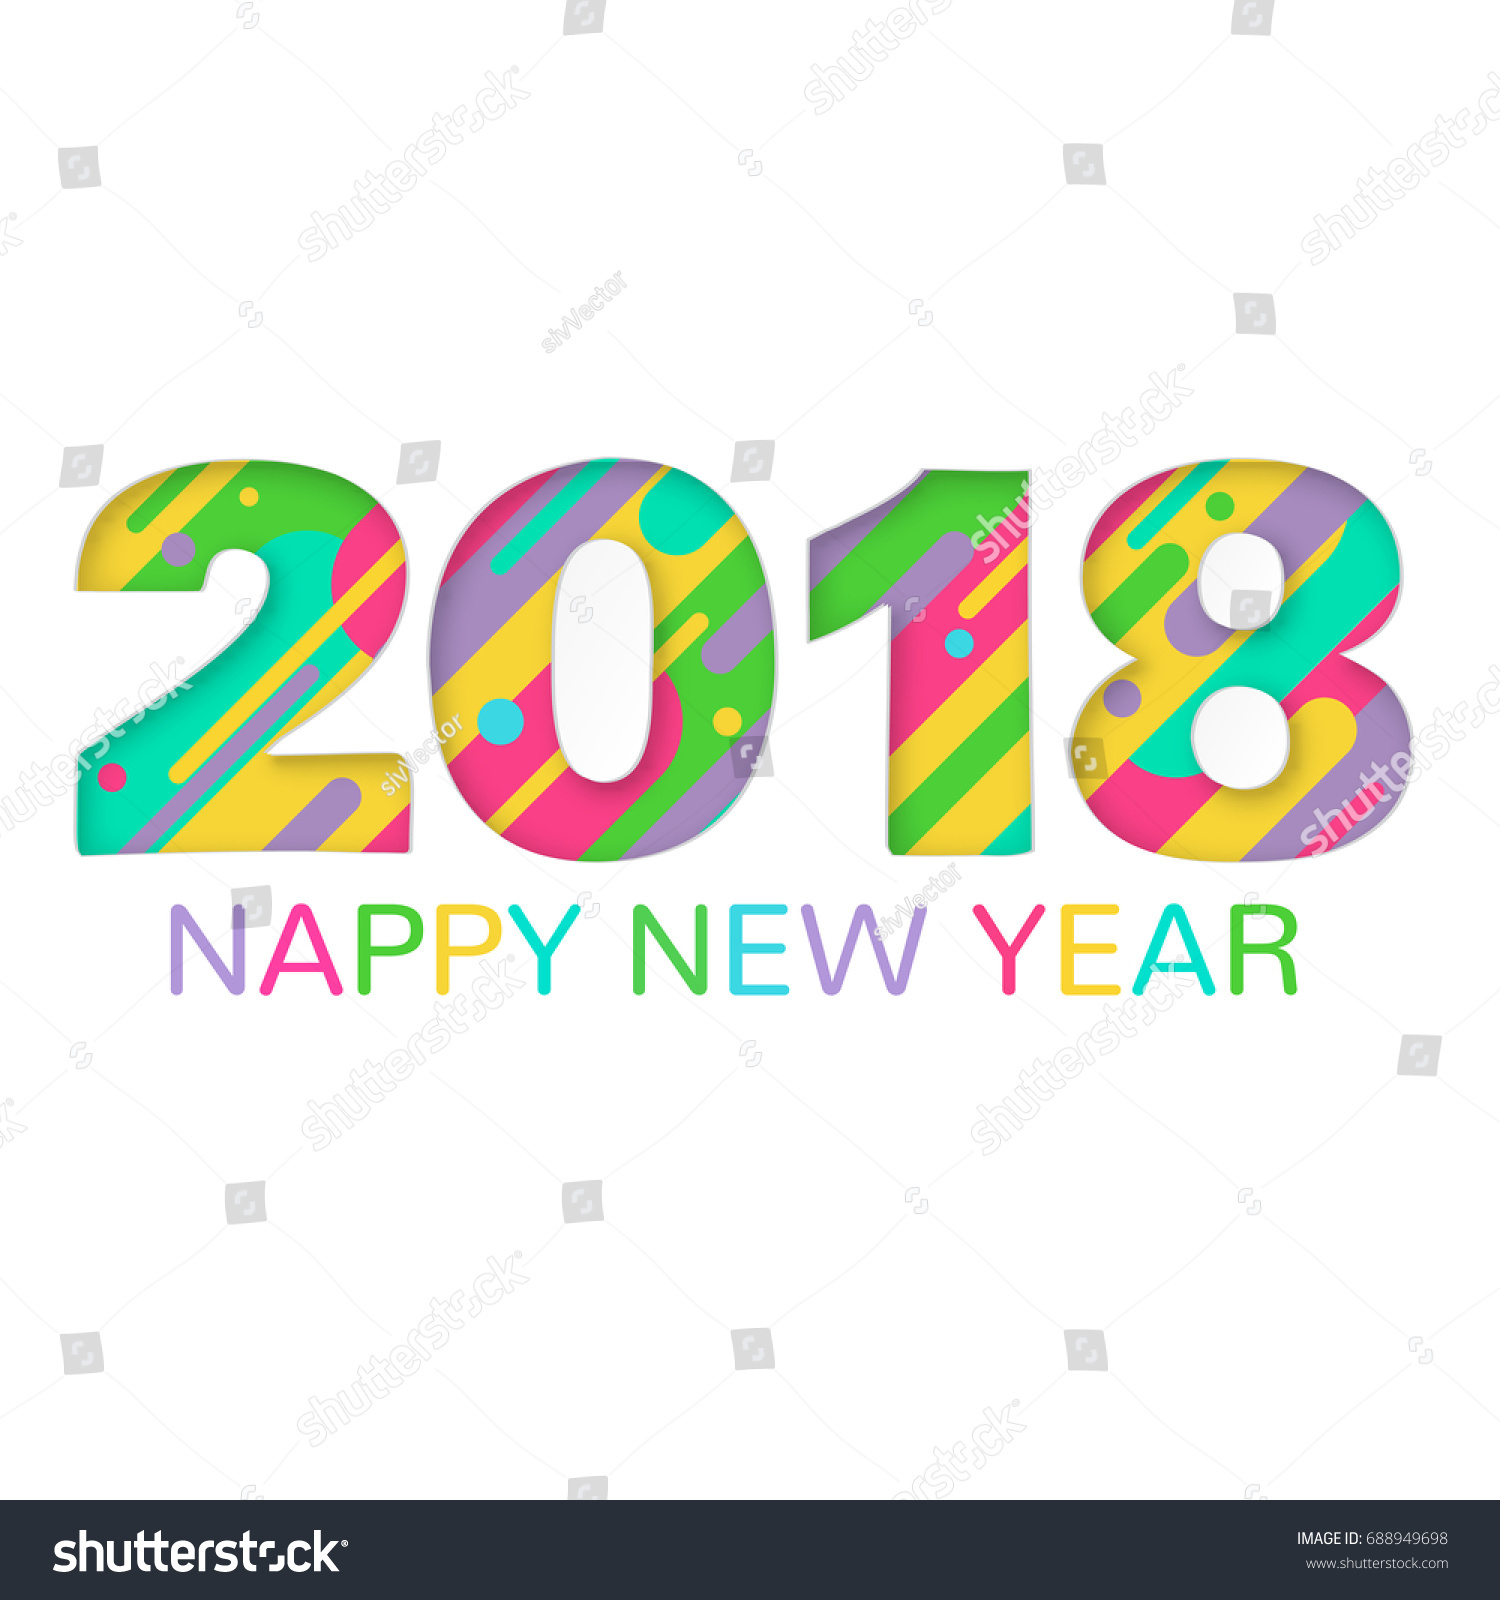 2018 happy new year greeting card stock vector 688949698 2018 happy new year greeting card with abstract colored rounded shapes lines in diagonal rhythm kristyandbryce Choice Image